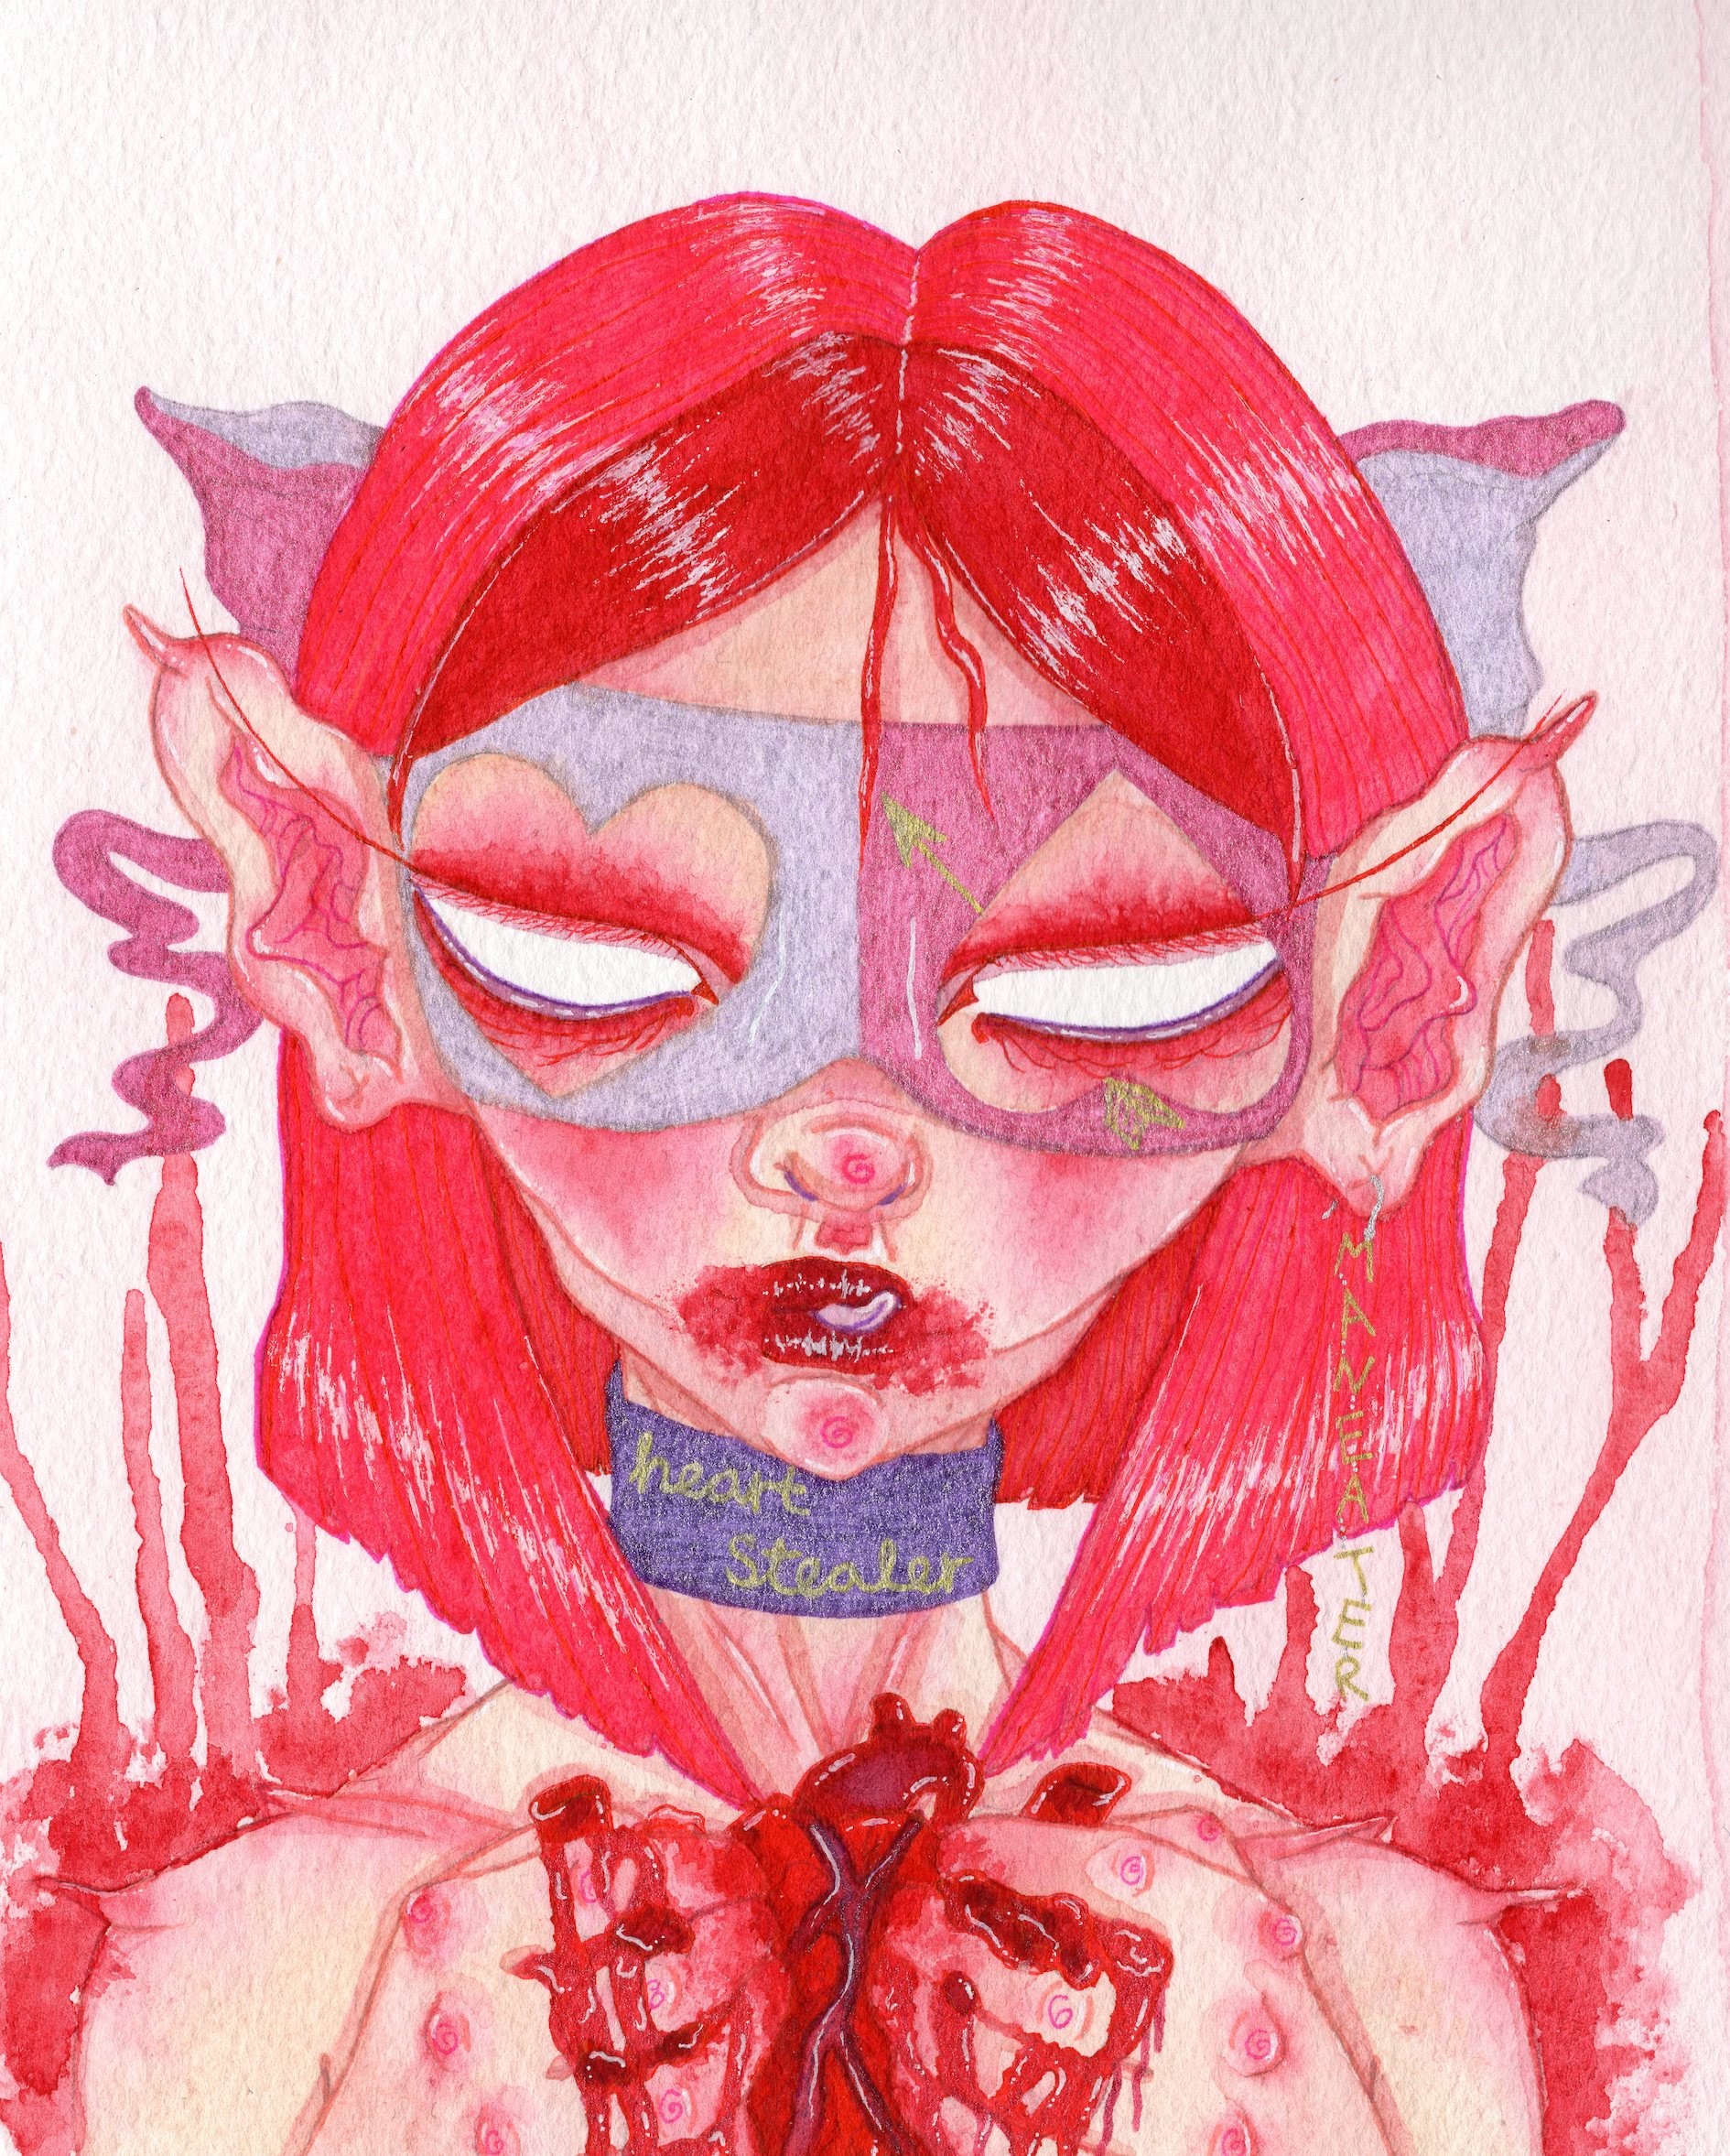 'Heart Stealer/Maneater' Print